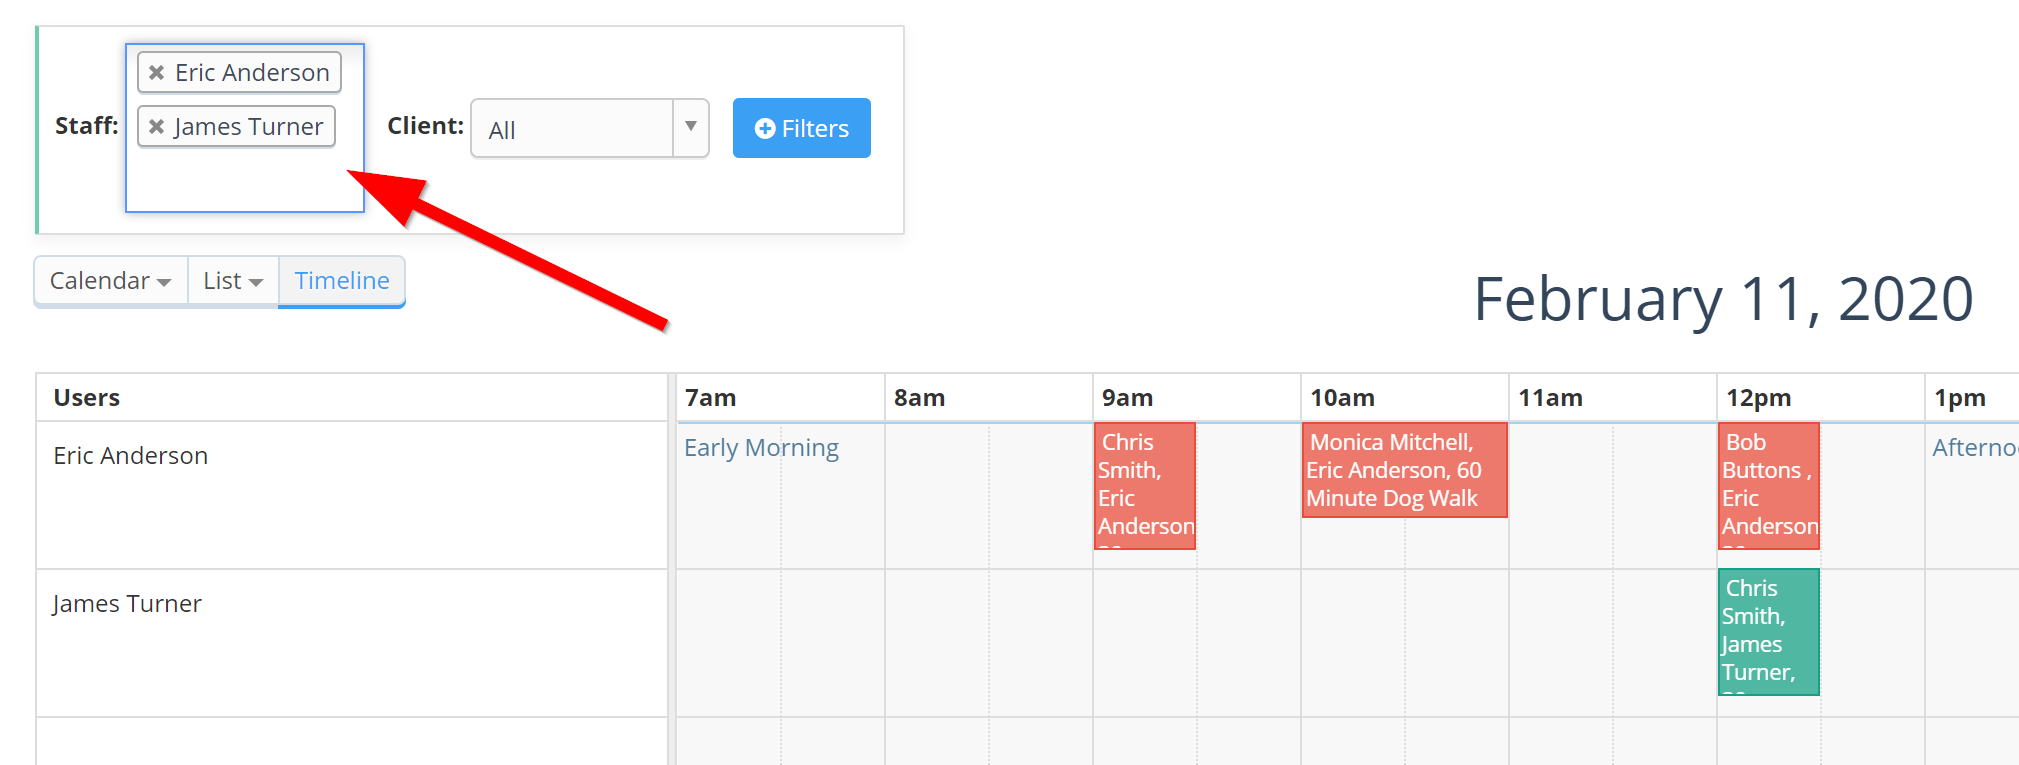 View of the Staff Filter in the Timeline View on the Scheduler